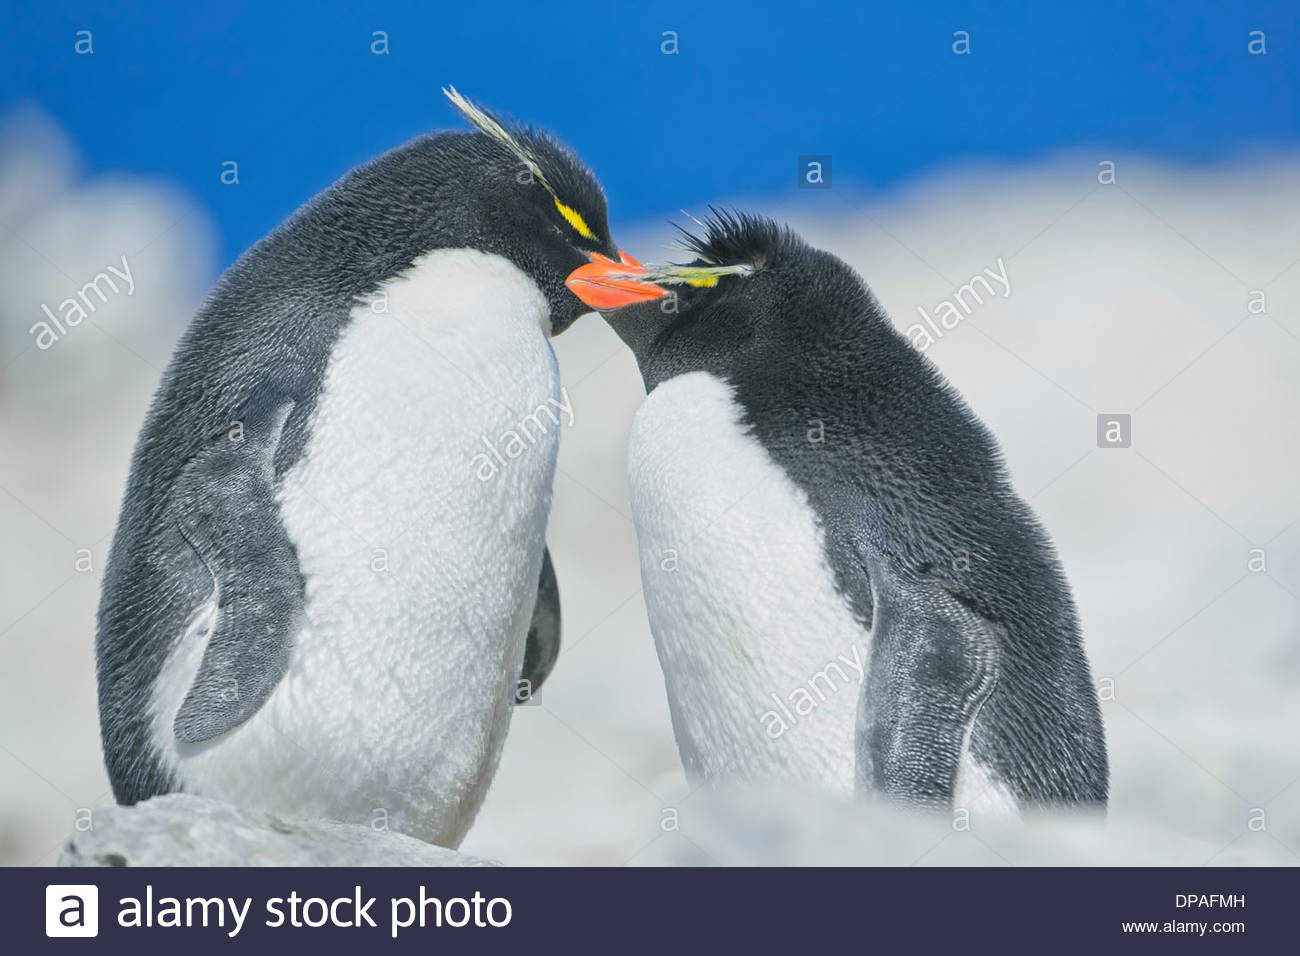 Two Rockhopper penguins (Eudyptes chrysocome chrysocome) in an affectionate mood, Falkland Islands - Stock Image